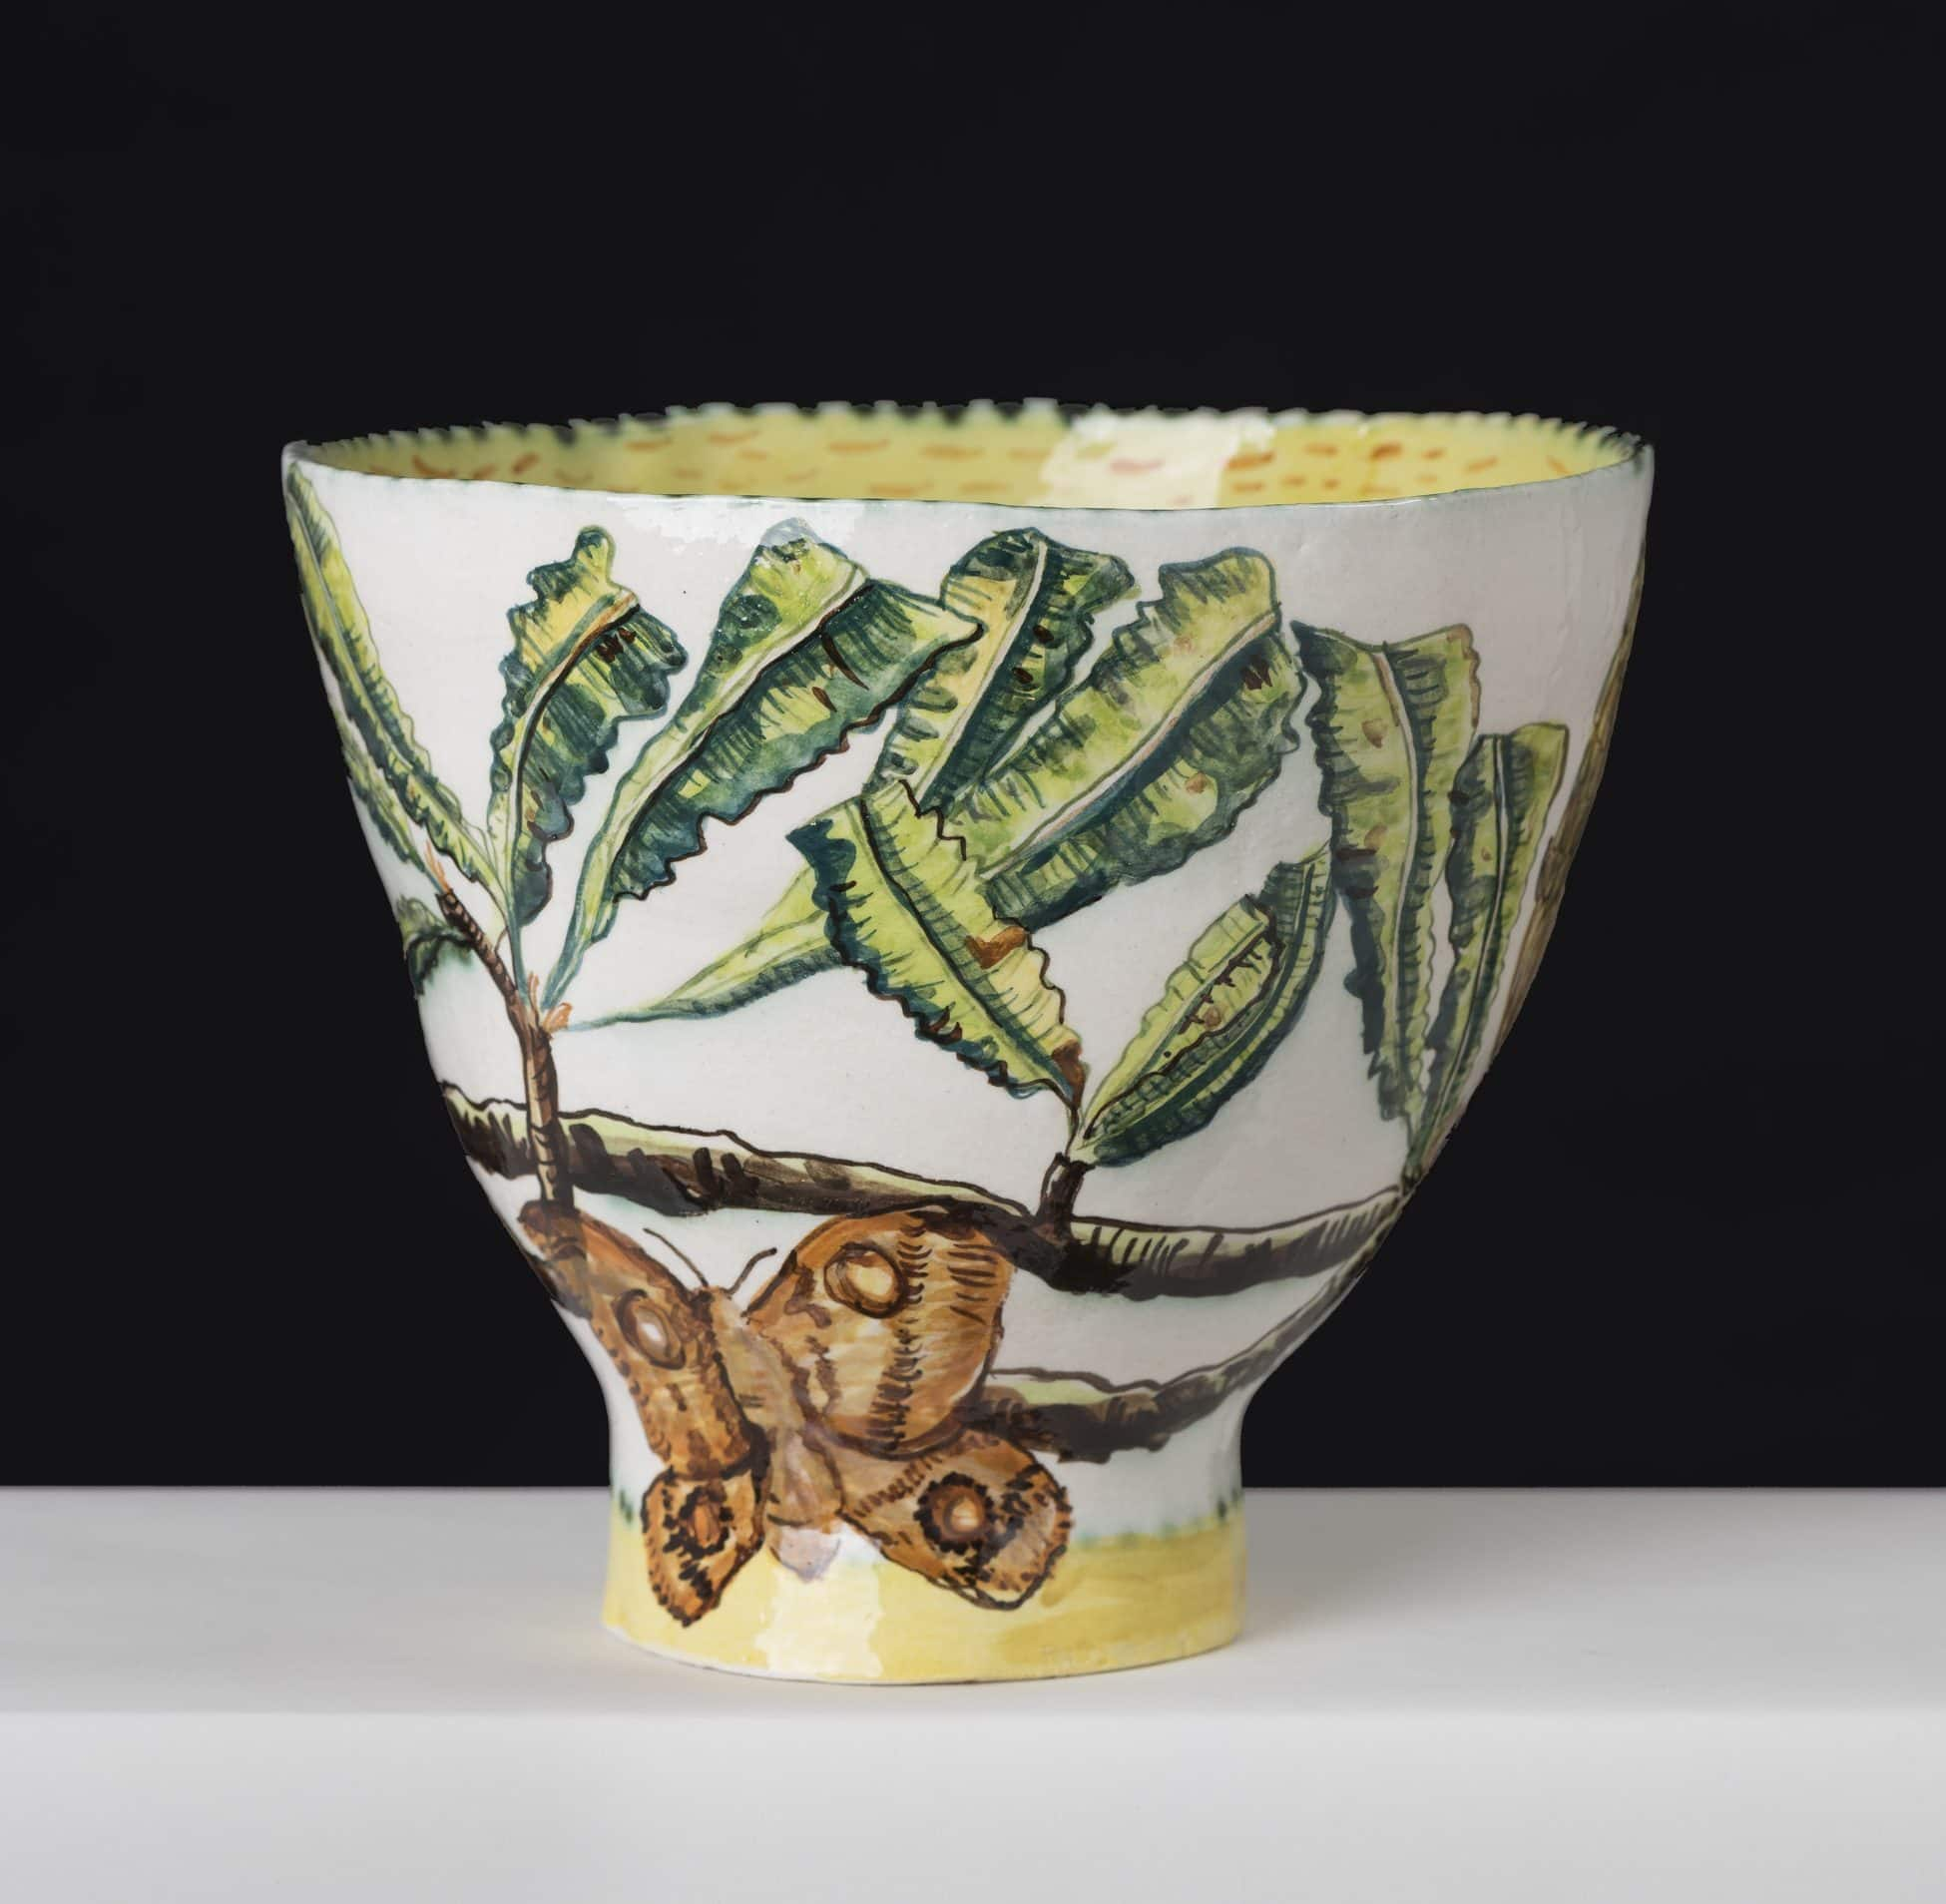 Fiona Hiscock, Banksia and Bogong Moth Bowl. approx. 23cm high